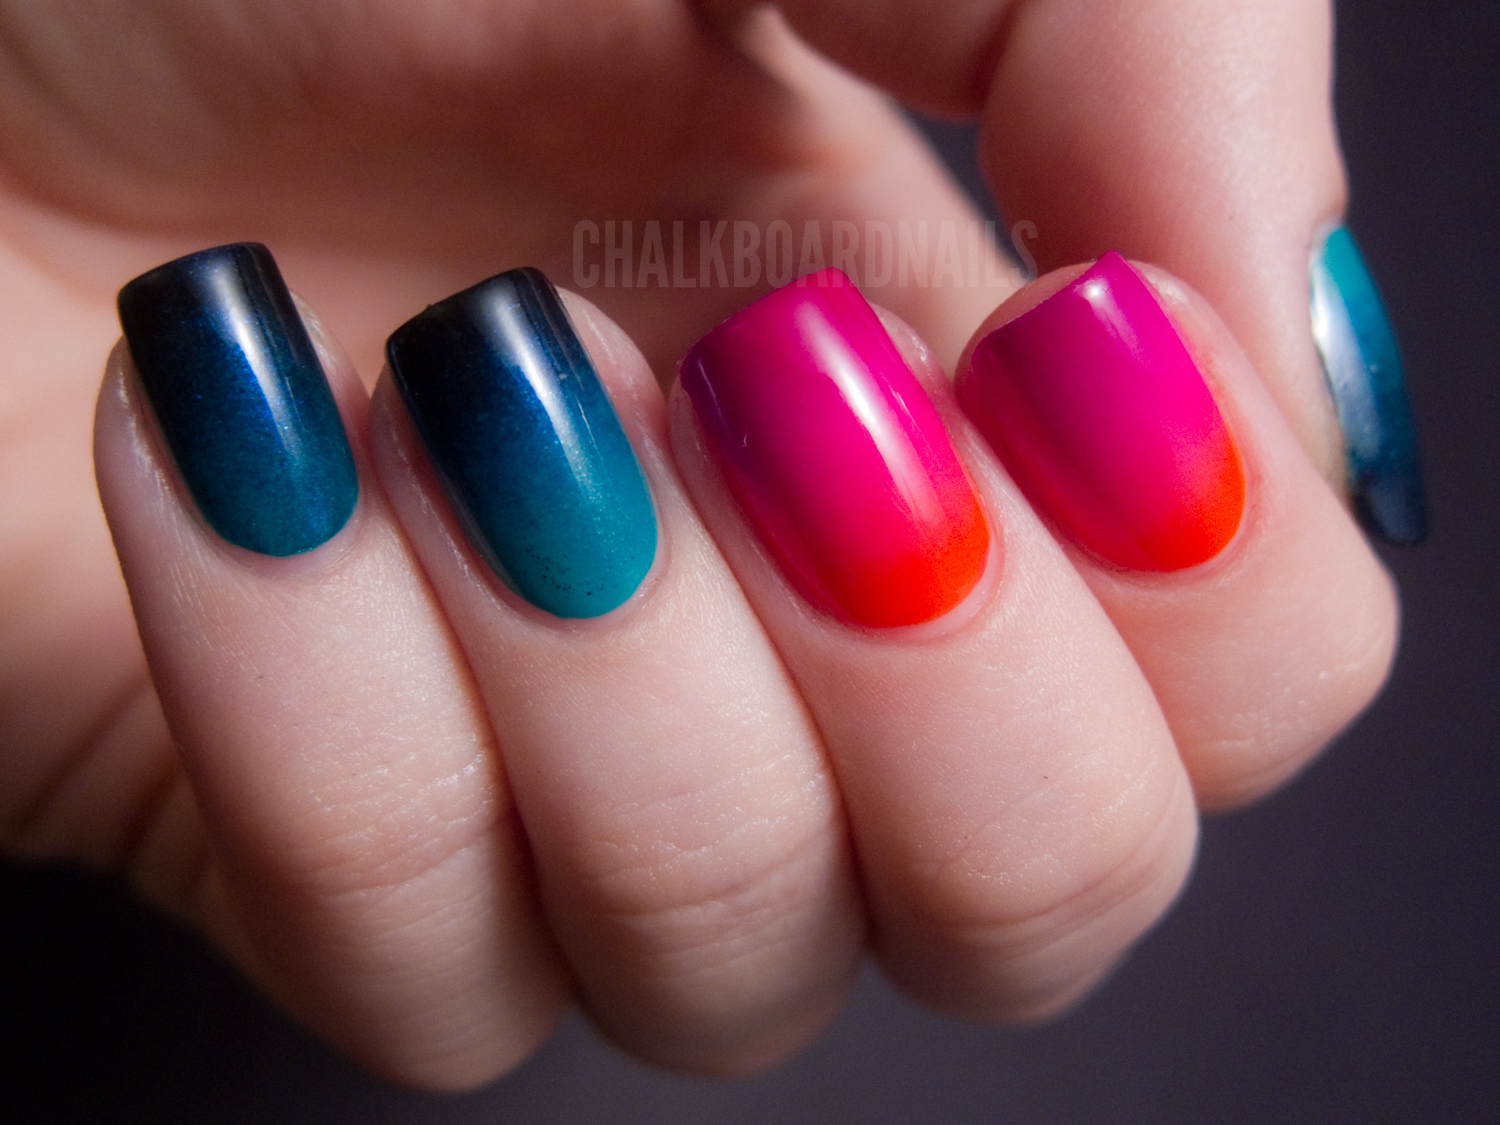 Urban Decay Showboat Nail Kit - Gradient Crazy | Chalkboard Nails ...